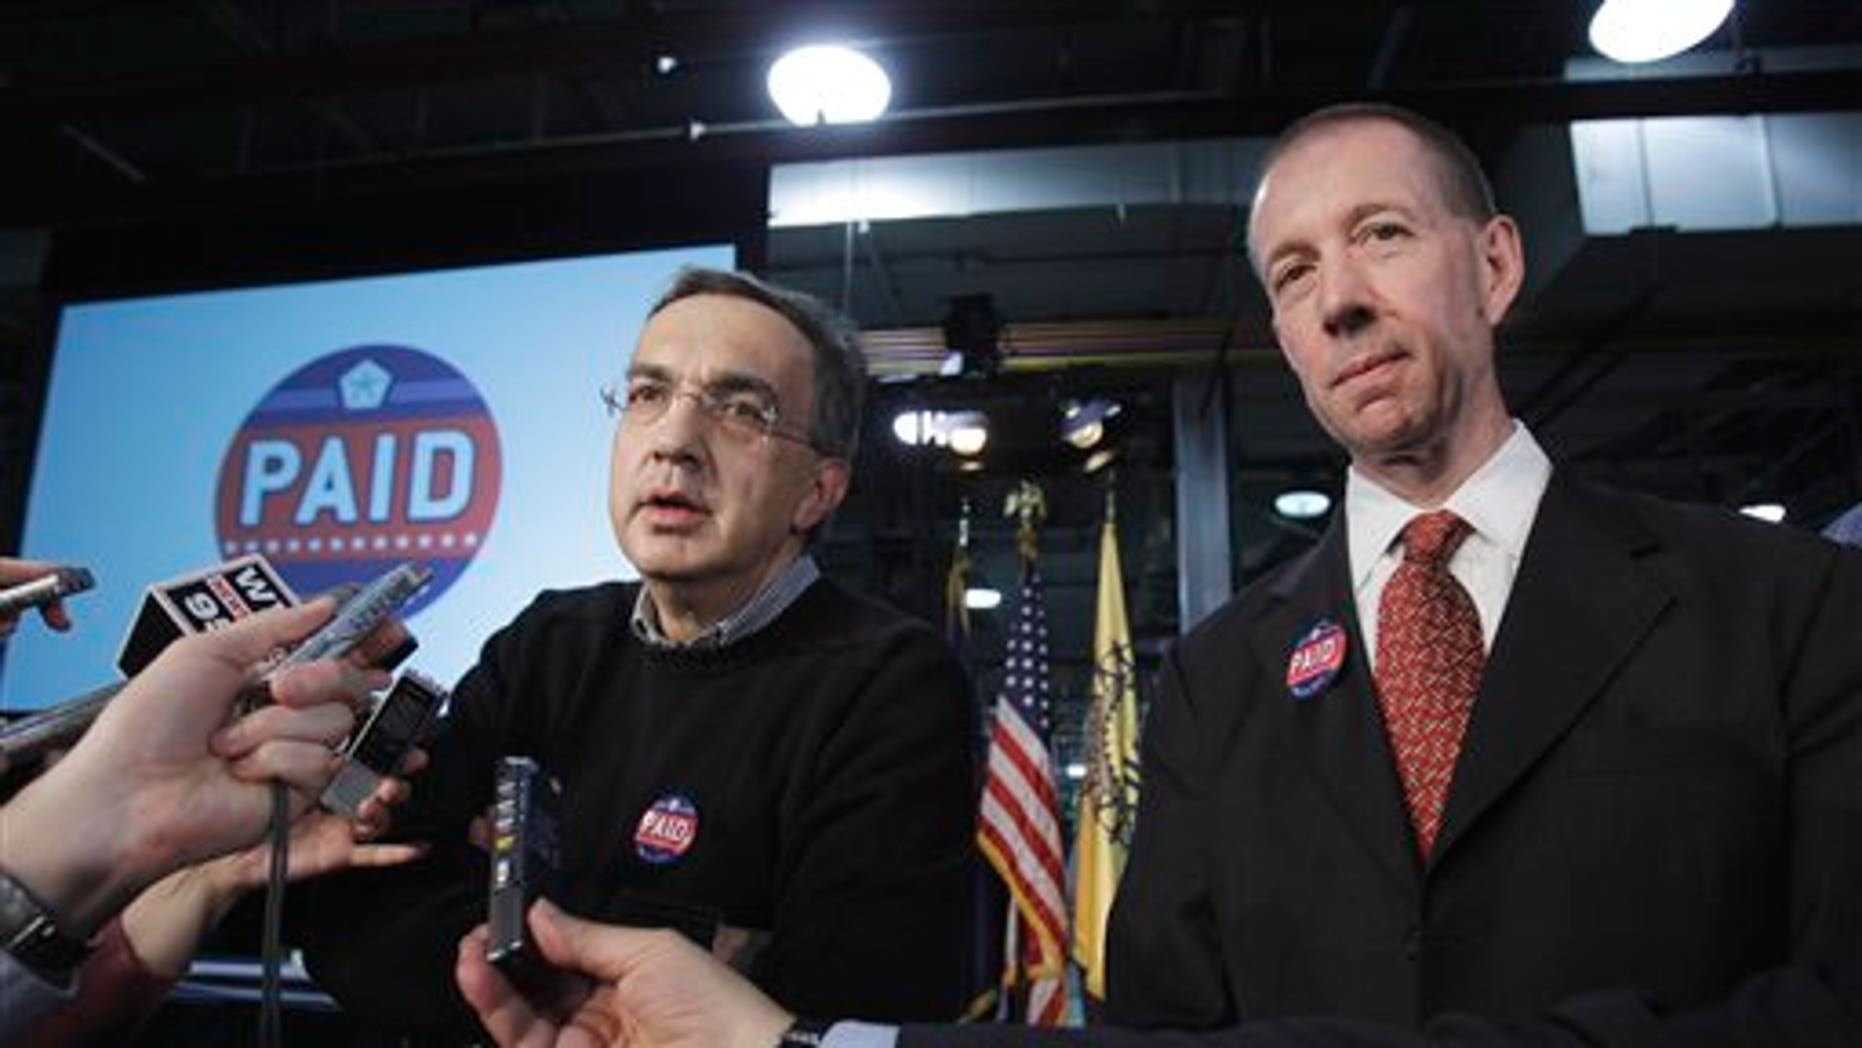 May 24: Chrysler Group CEO Sergio Marchionne, left, and Ron Bloom, assistant to President Obama for Manufacturing Policy talk to the media at the Sterling Heights Assembly Plant in Sterling Heights, Mich.